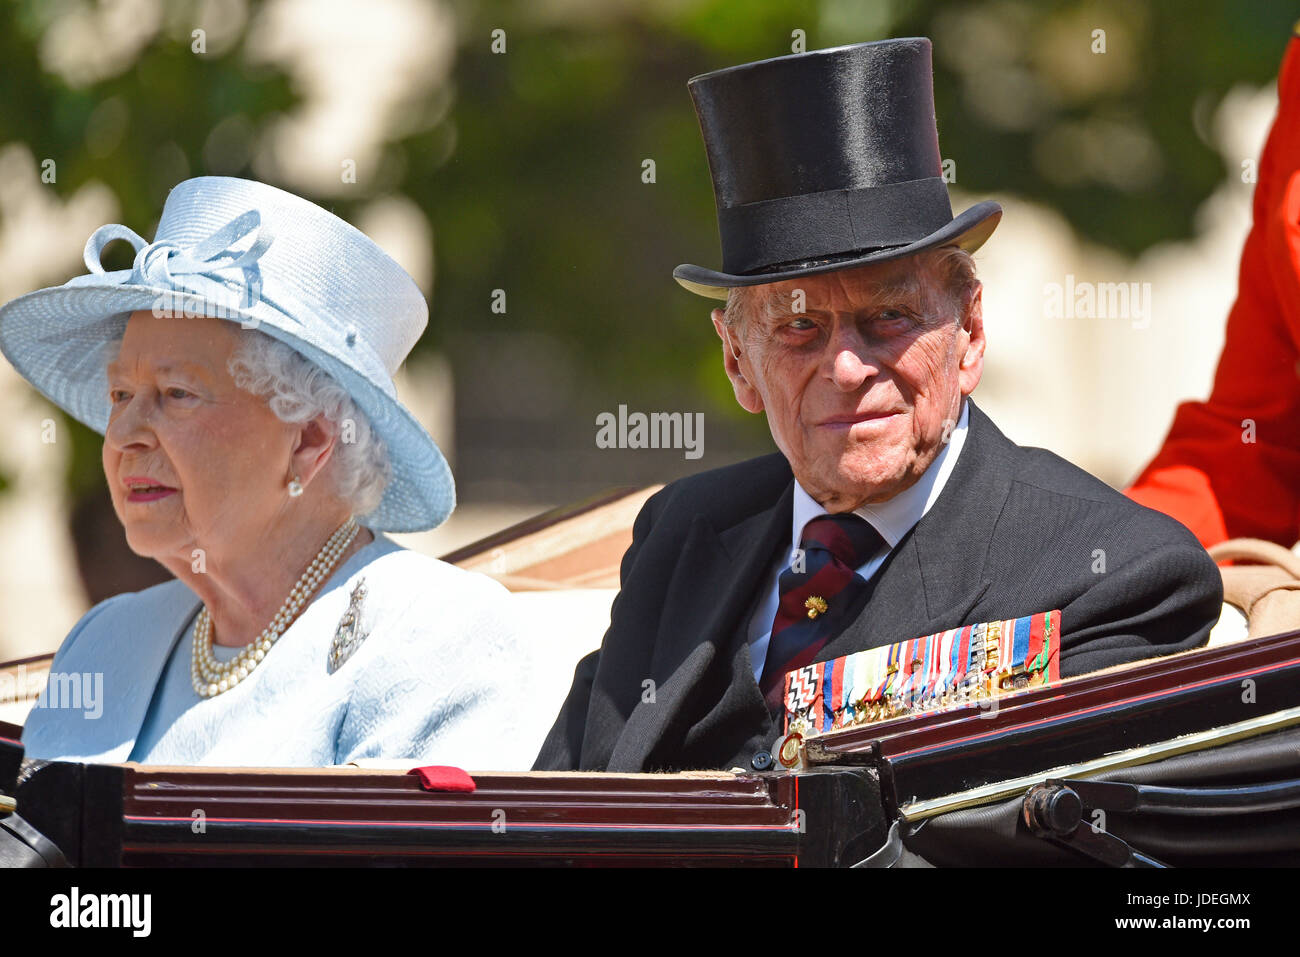 the-queen-and-prince-philip-in-a-carriage-during-trooping-the-colour-JDEGMX.jpg